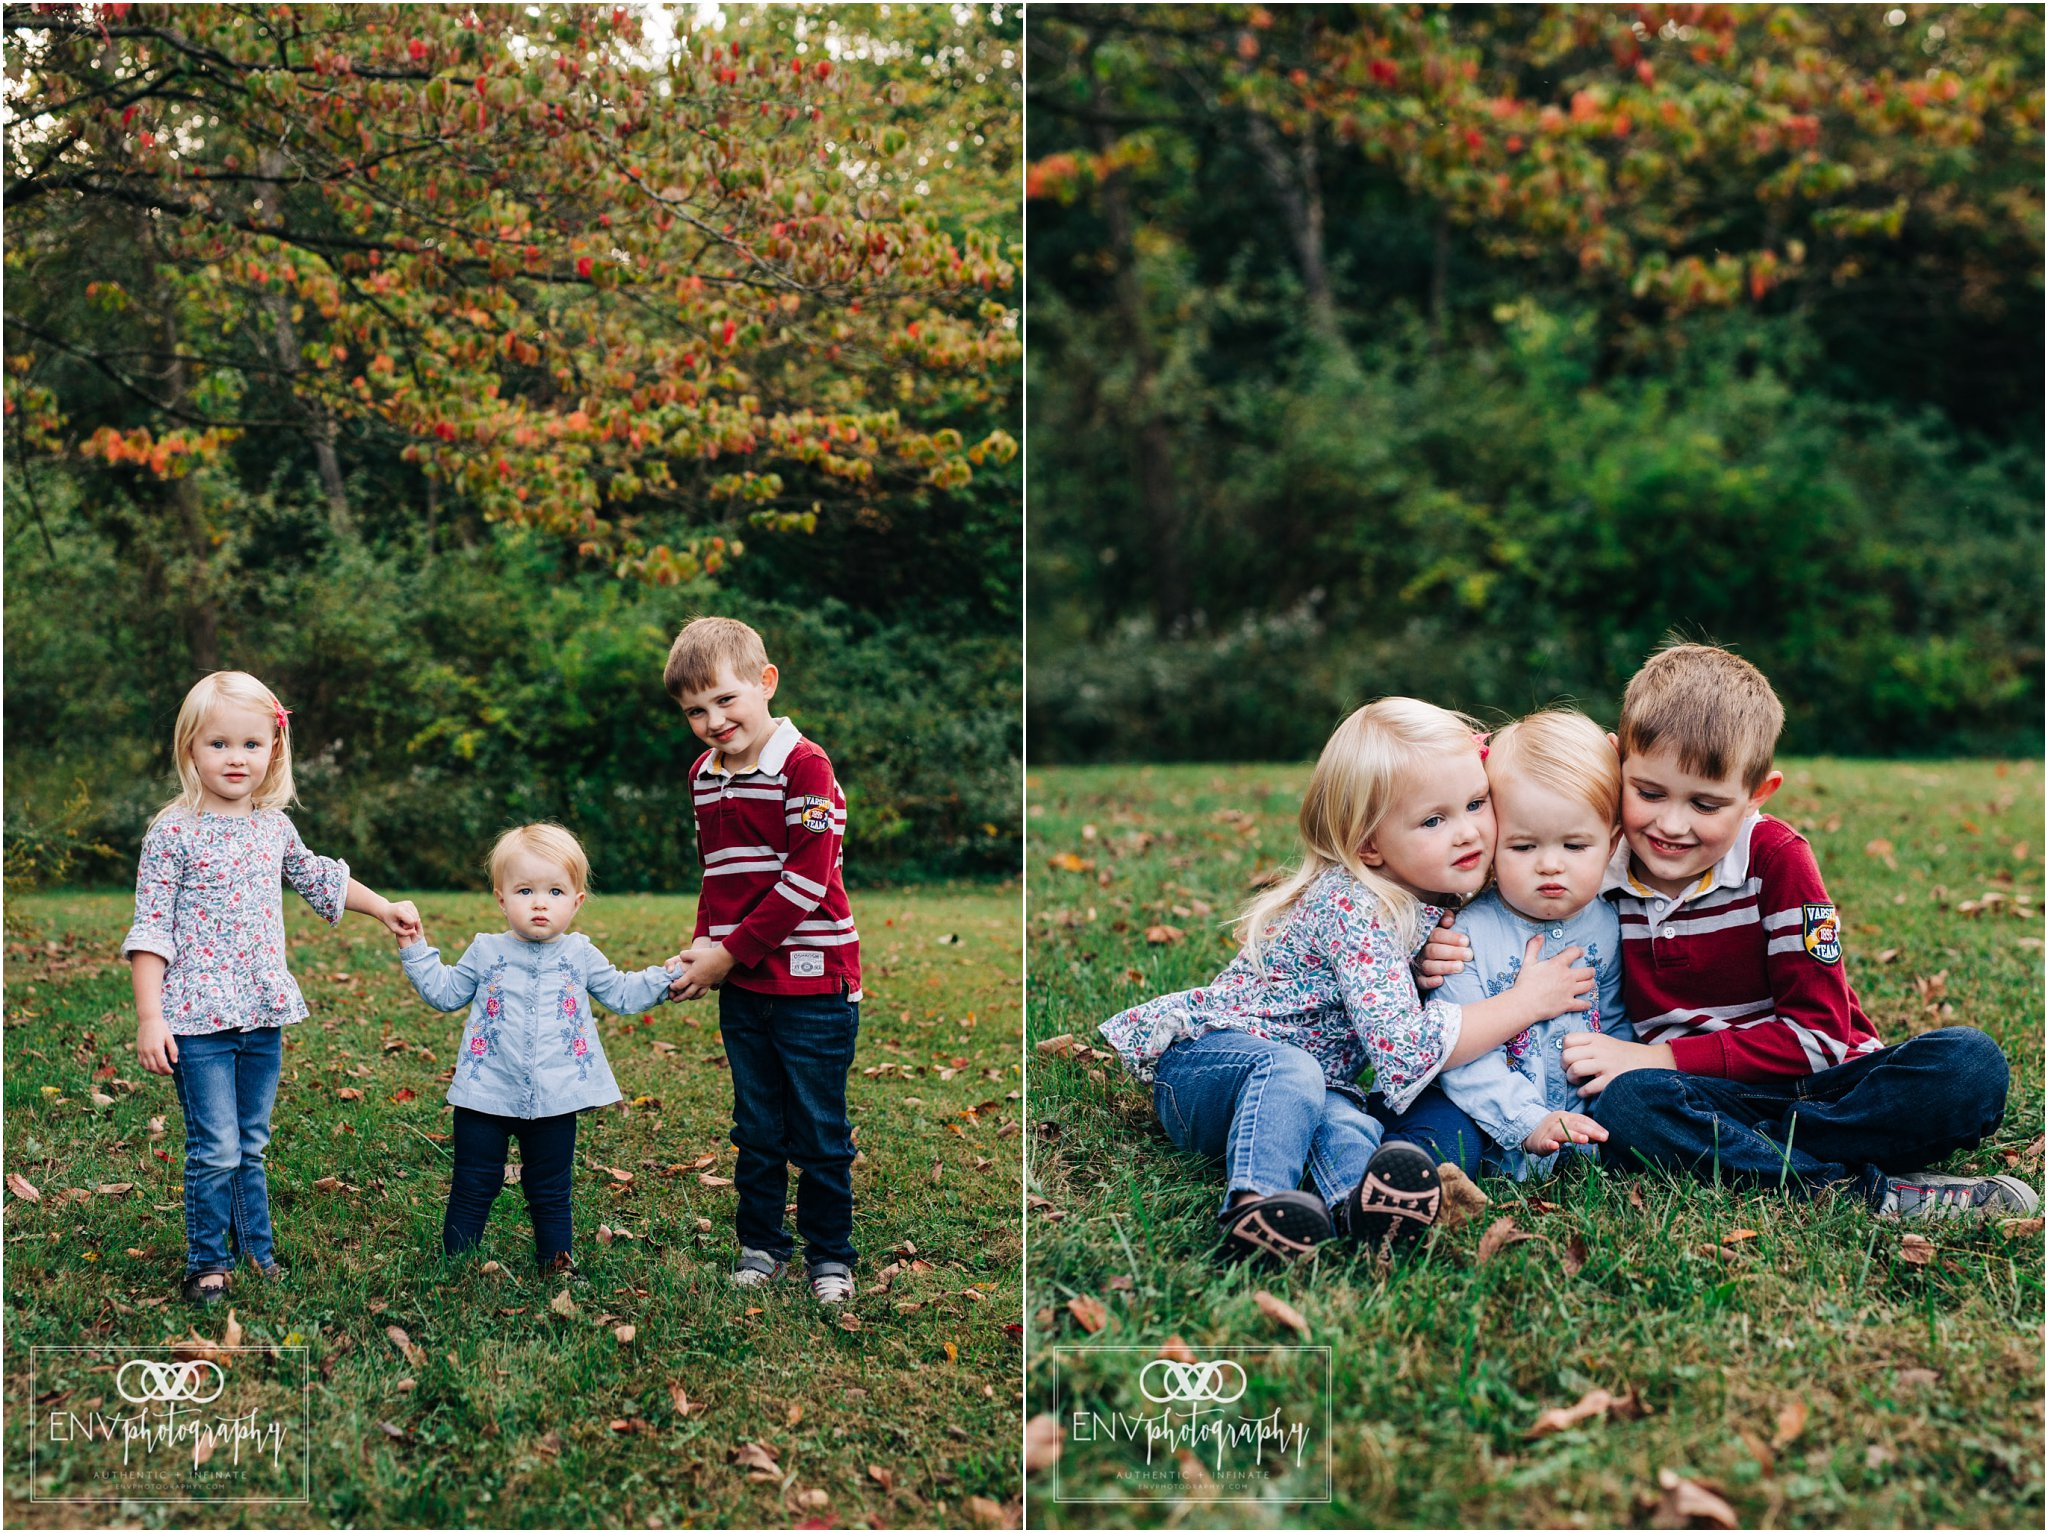 Mount Vernon Ohio Sunbury Ohio Family Photographer (13).jpg